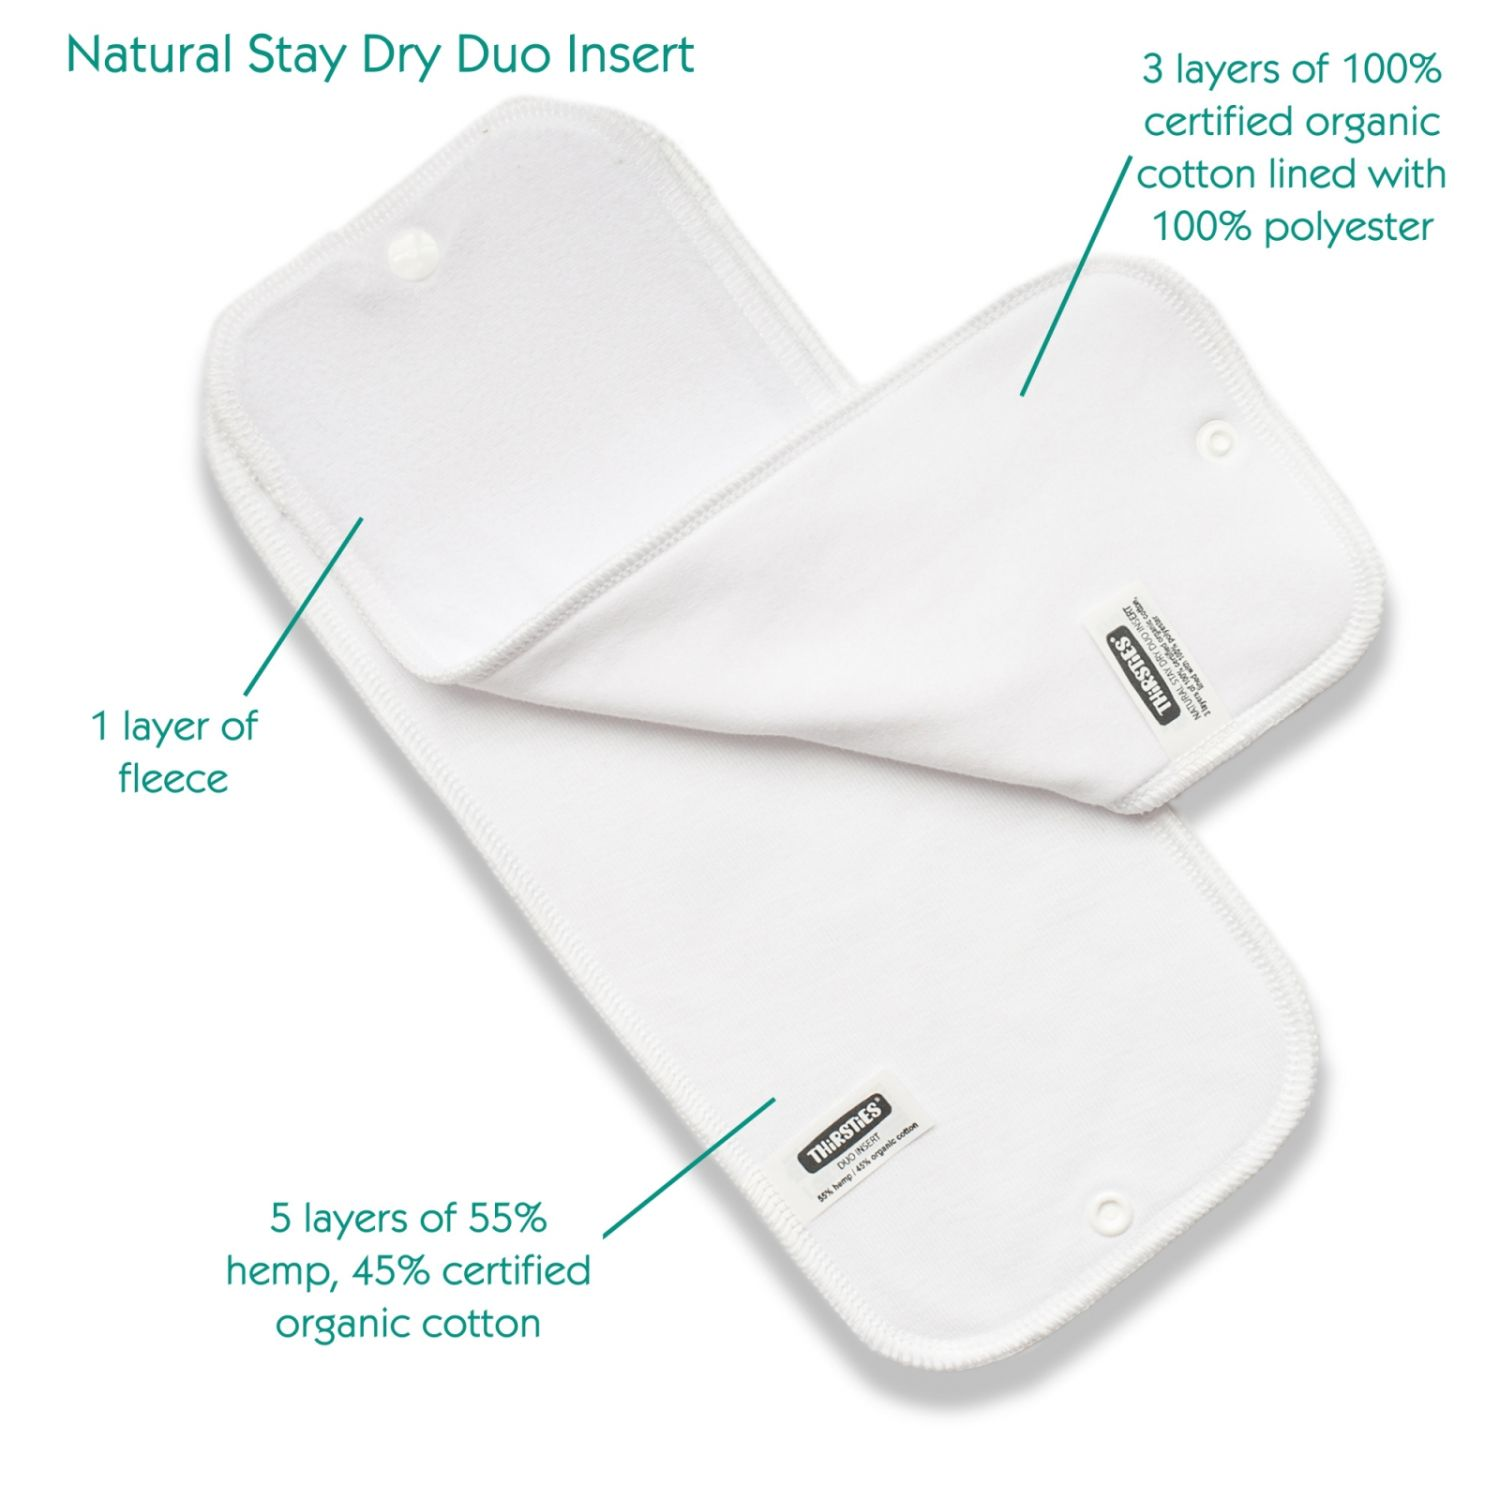 Pack de absorbentes Thirsties Duo Stay Dry Natural